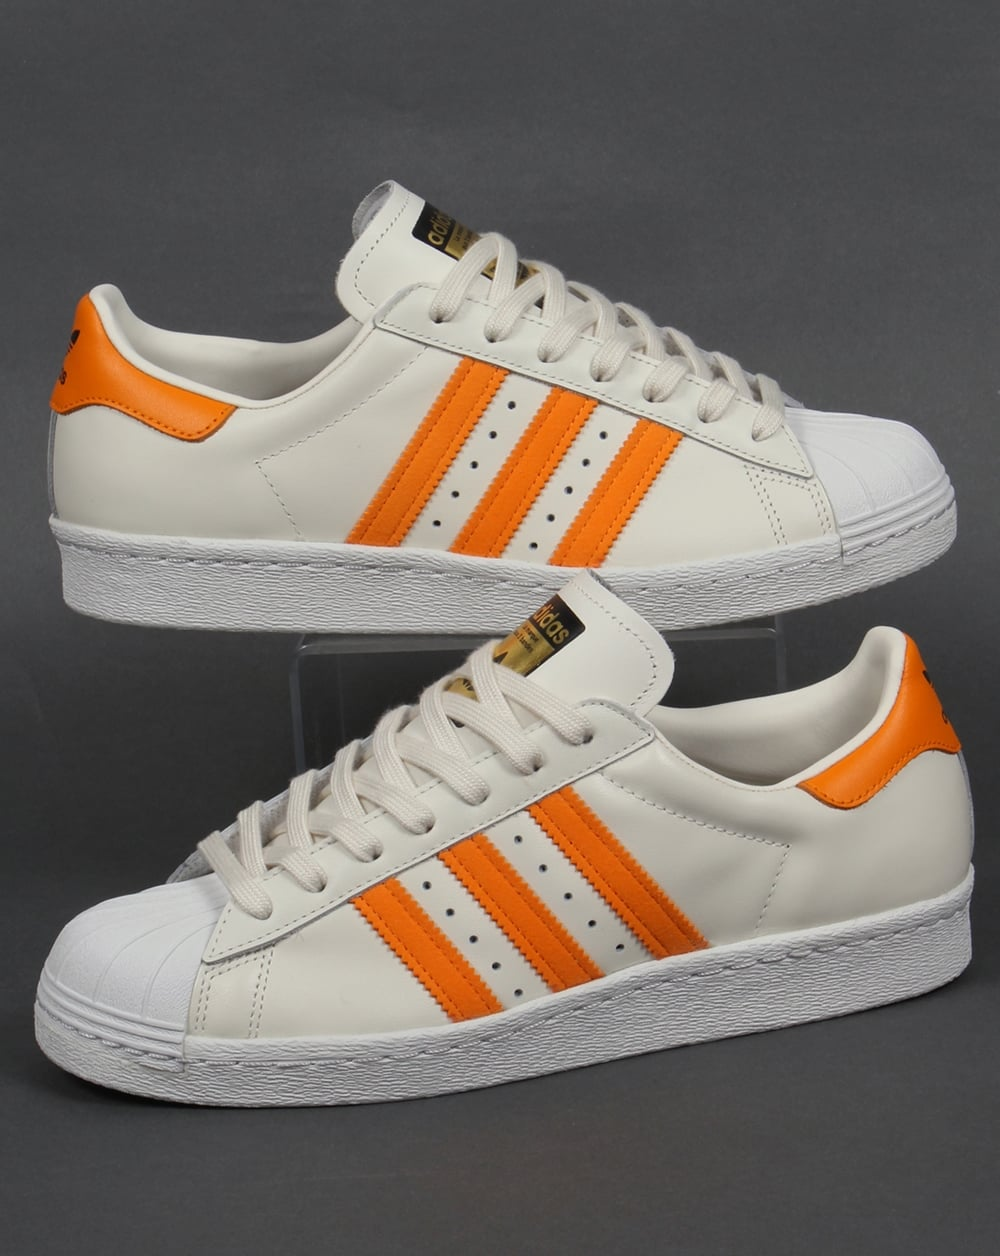 5bf8da65d0c adidas Trainers Adidas Superstar 80s Trainers Off White Orange